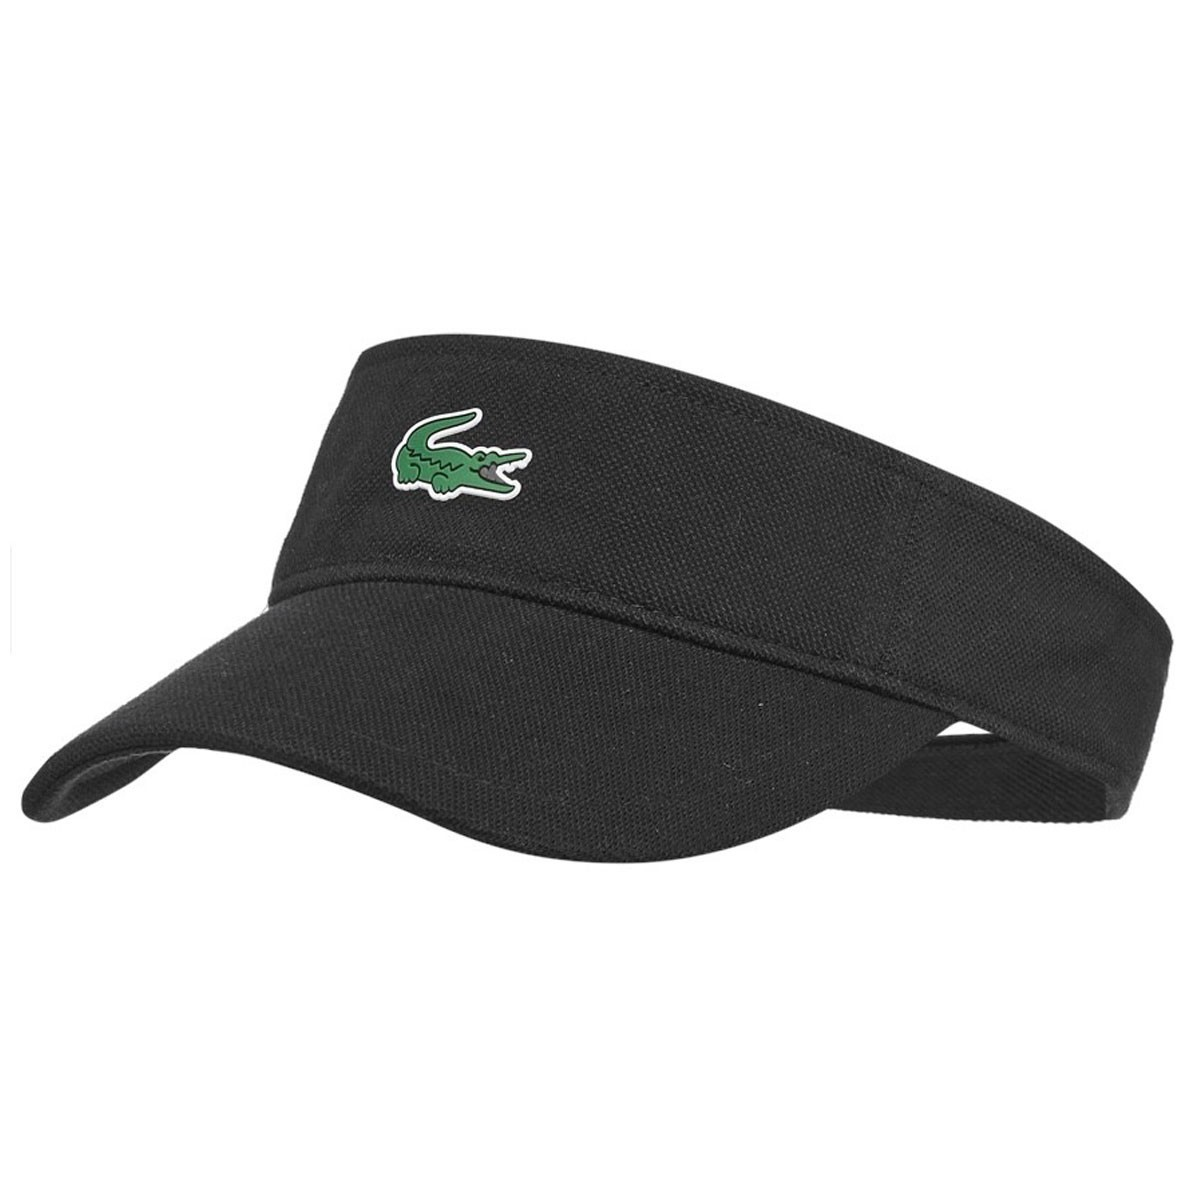 Lacoste Mens RK3553 Adjustable Pique Cotton Visor Golf Cap c5465d71732